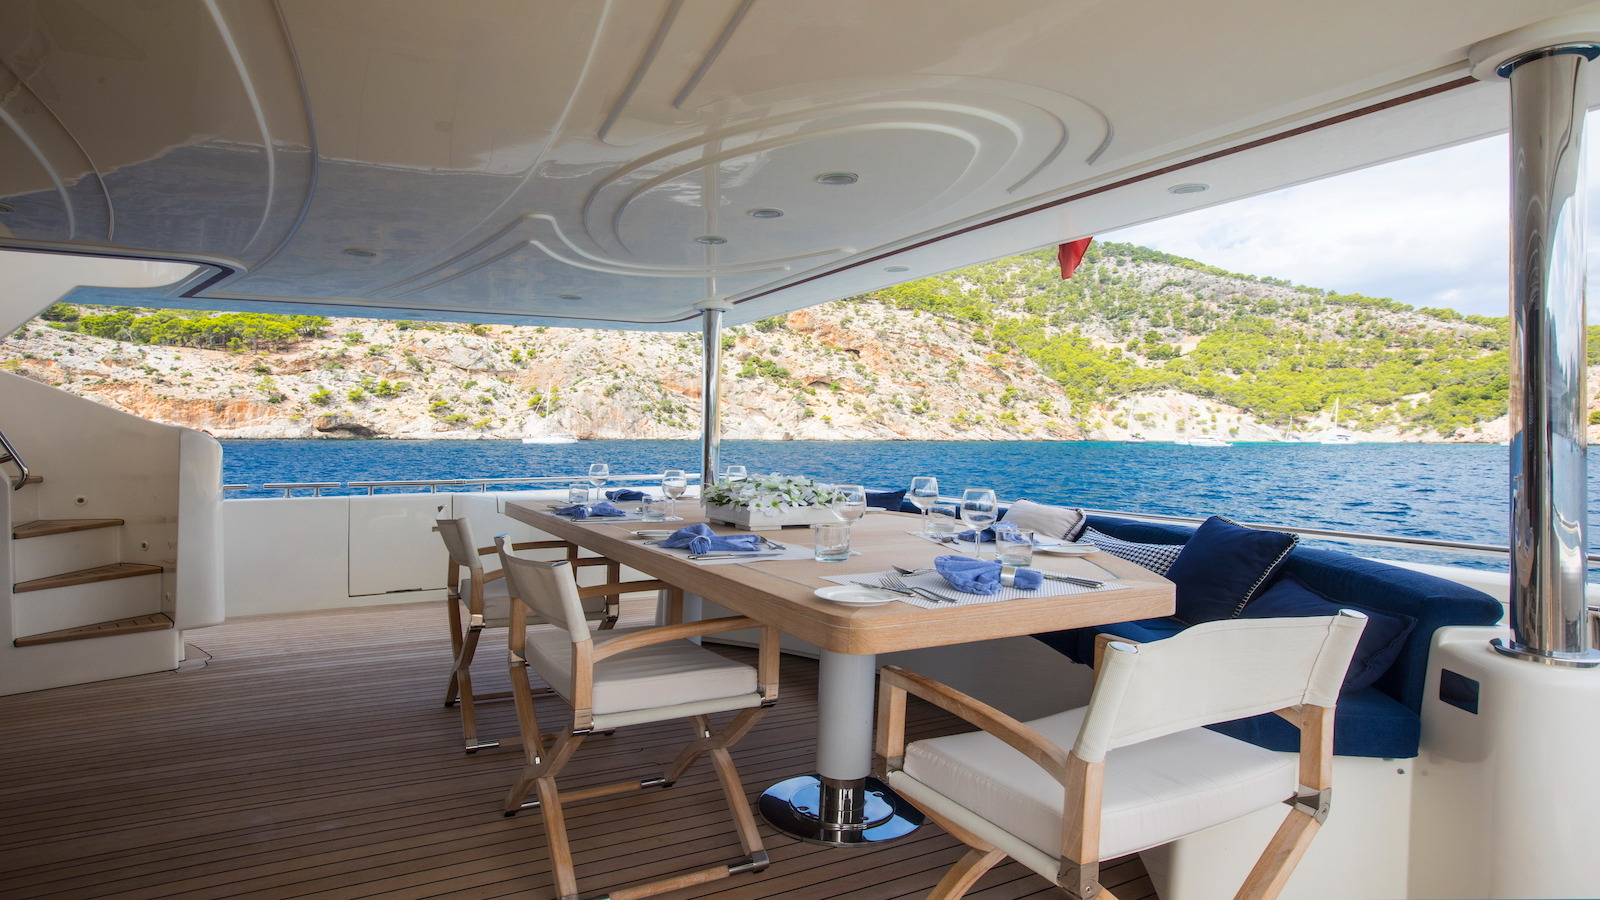 Aft deck and alfresco dining